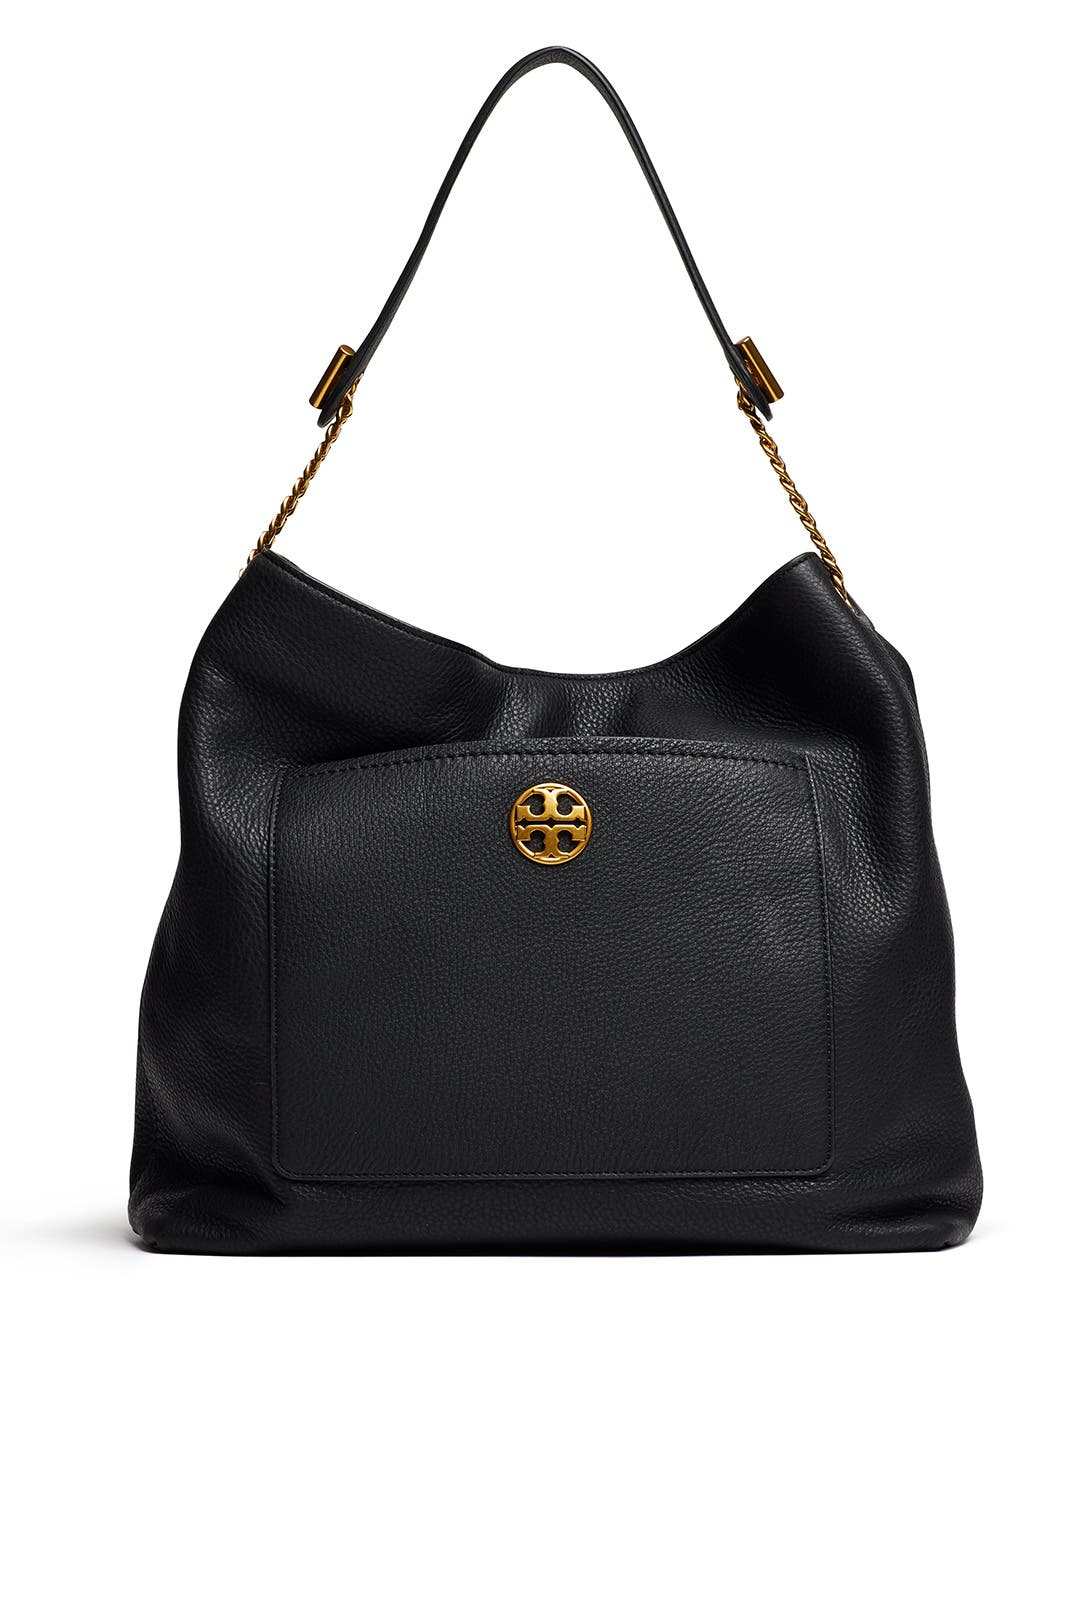 7b013e8eaff9 Black Chelsea Chain Hobo by Tory Burch Accessories for $85 | Rent ...